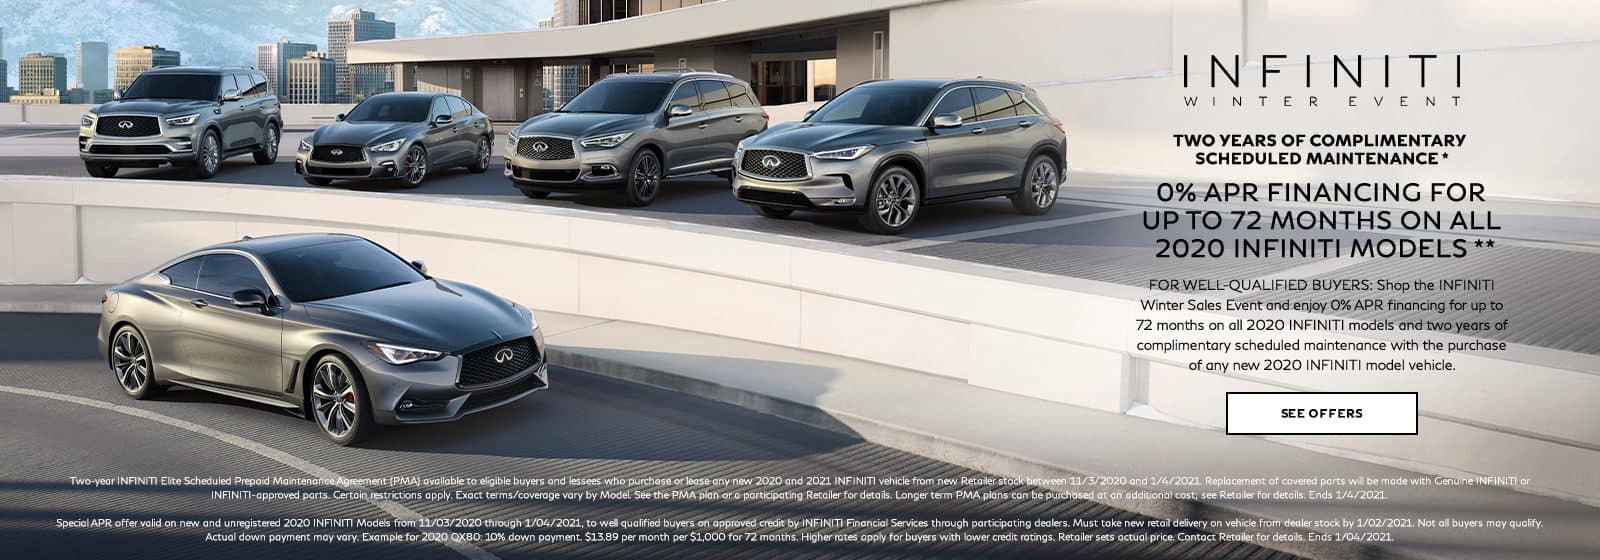 0% APR financing for up to 72 months on all 2020 INFINITI Models with two years of complimentary scheduled maintenance with the purchase of a new 2020 INFINITI vehicle. For well-qualified buyers. Restrictions may apply. See retailer for complete details. Offer ends 1/4/2021.